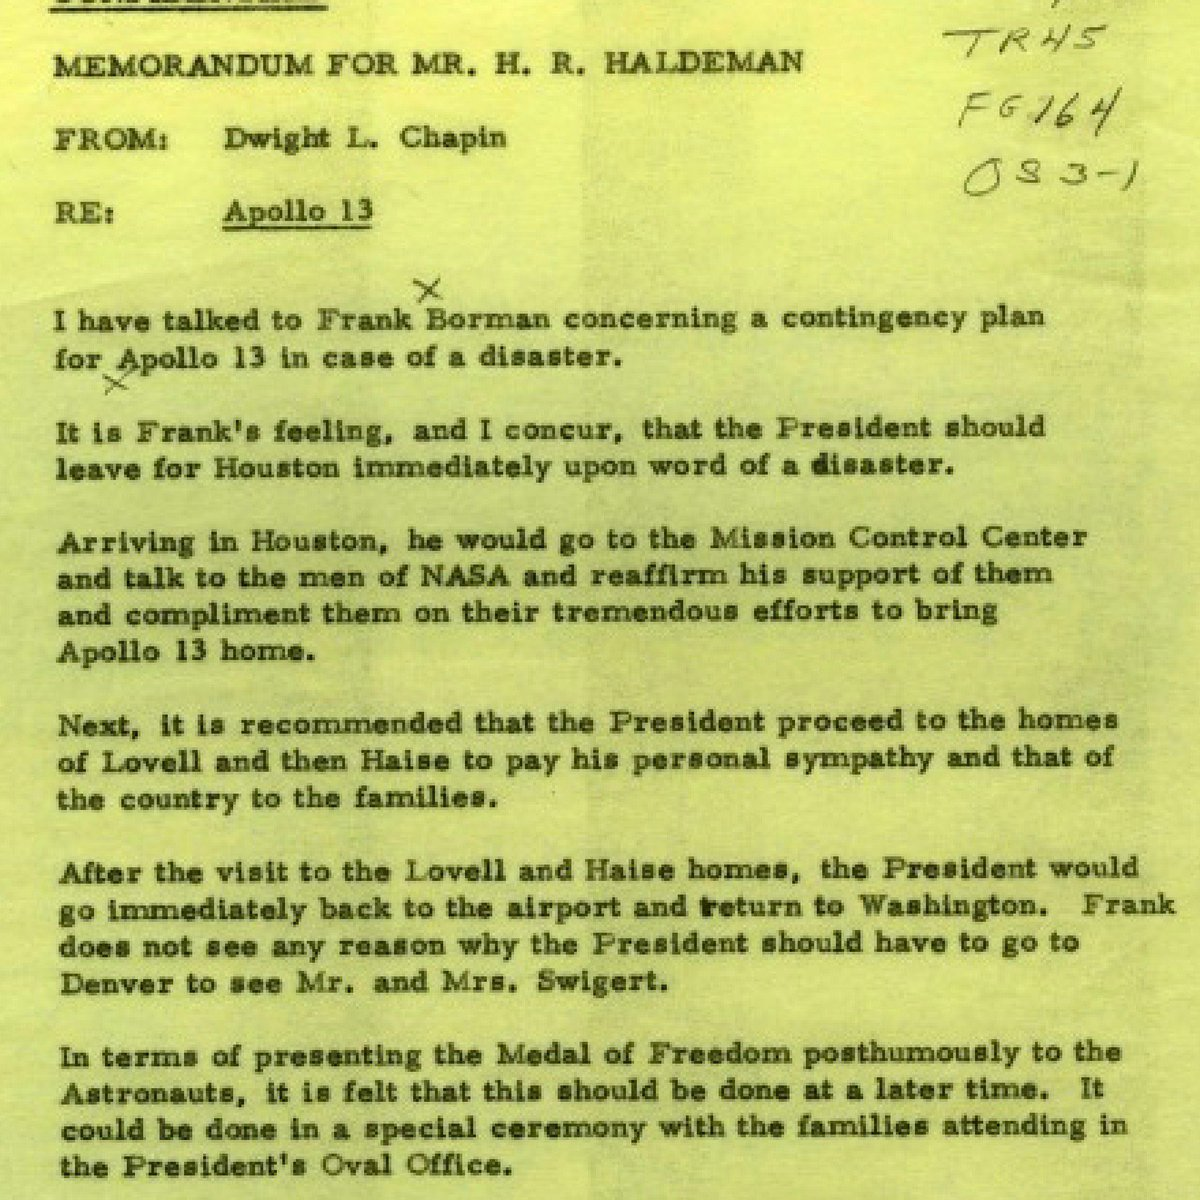 Here is Richard Nixon's secret plan for what he would do in case Apollo 13 ended in tragedy, this week 1970: